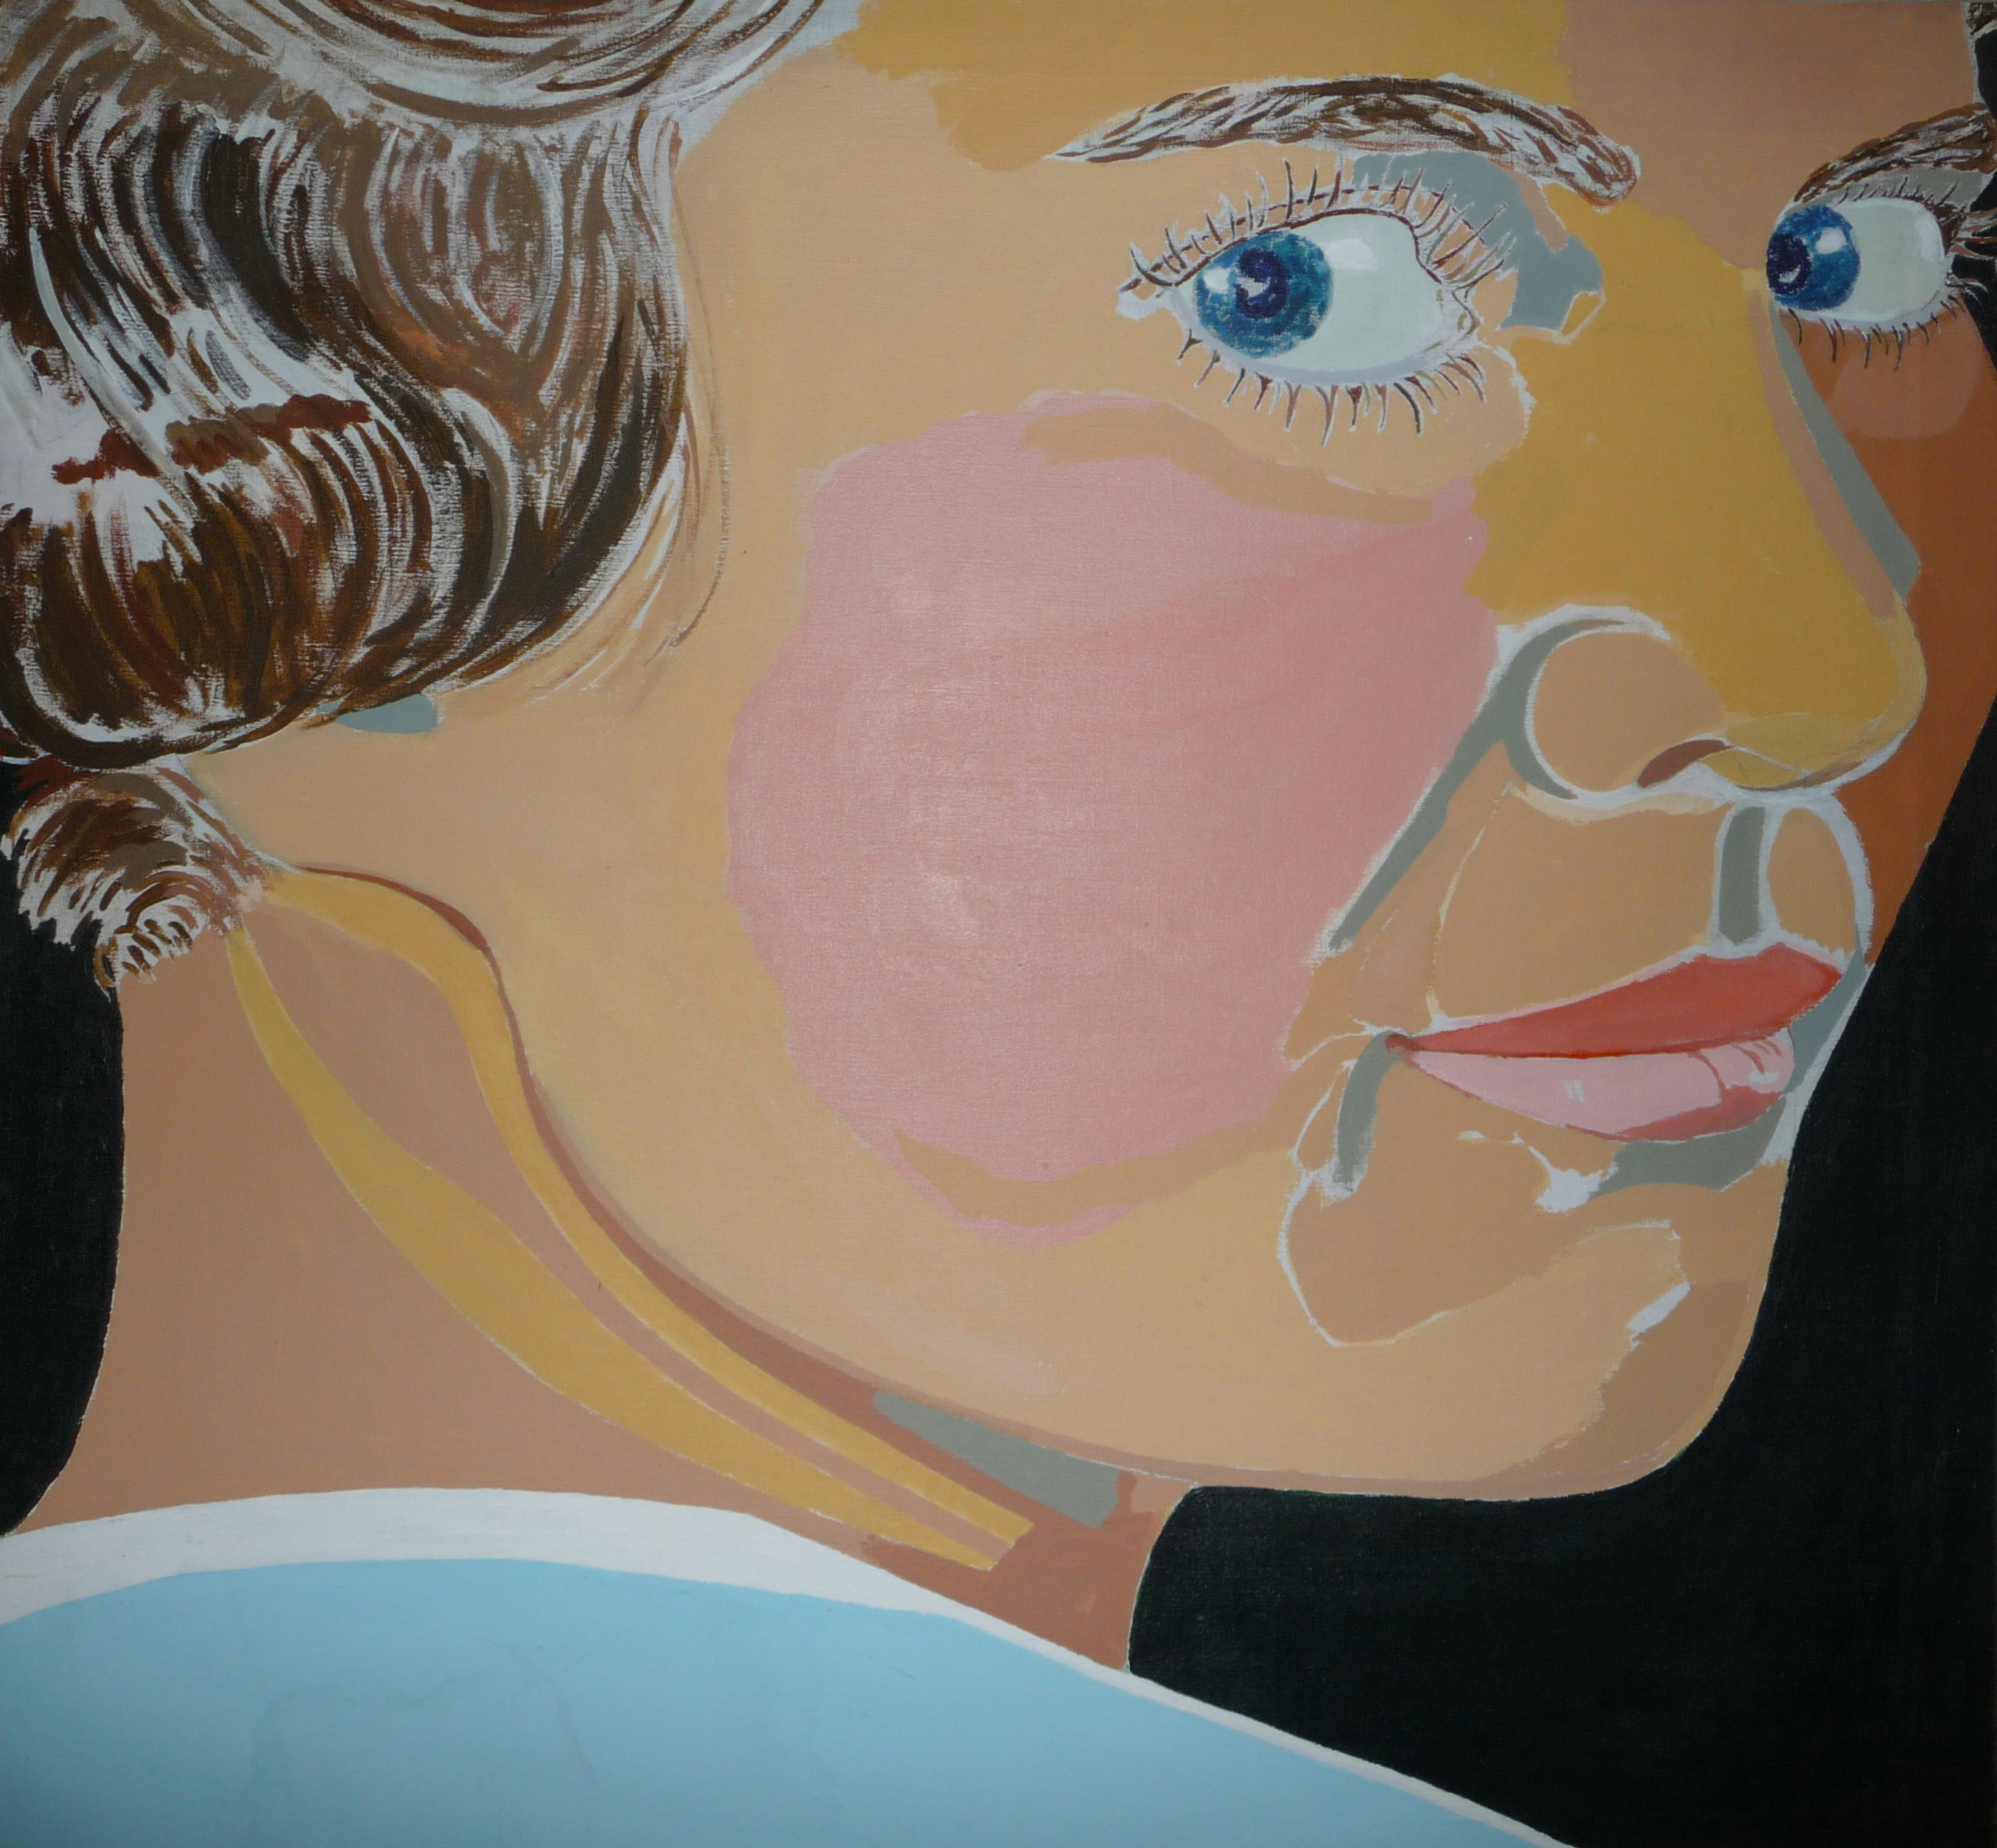 Slightly posturized painting Woman in '20s  by Karl Schonborn